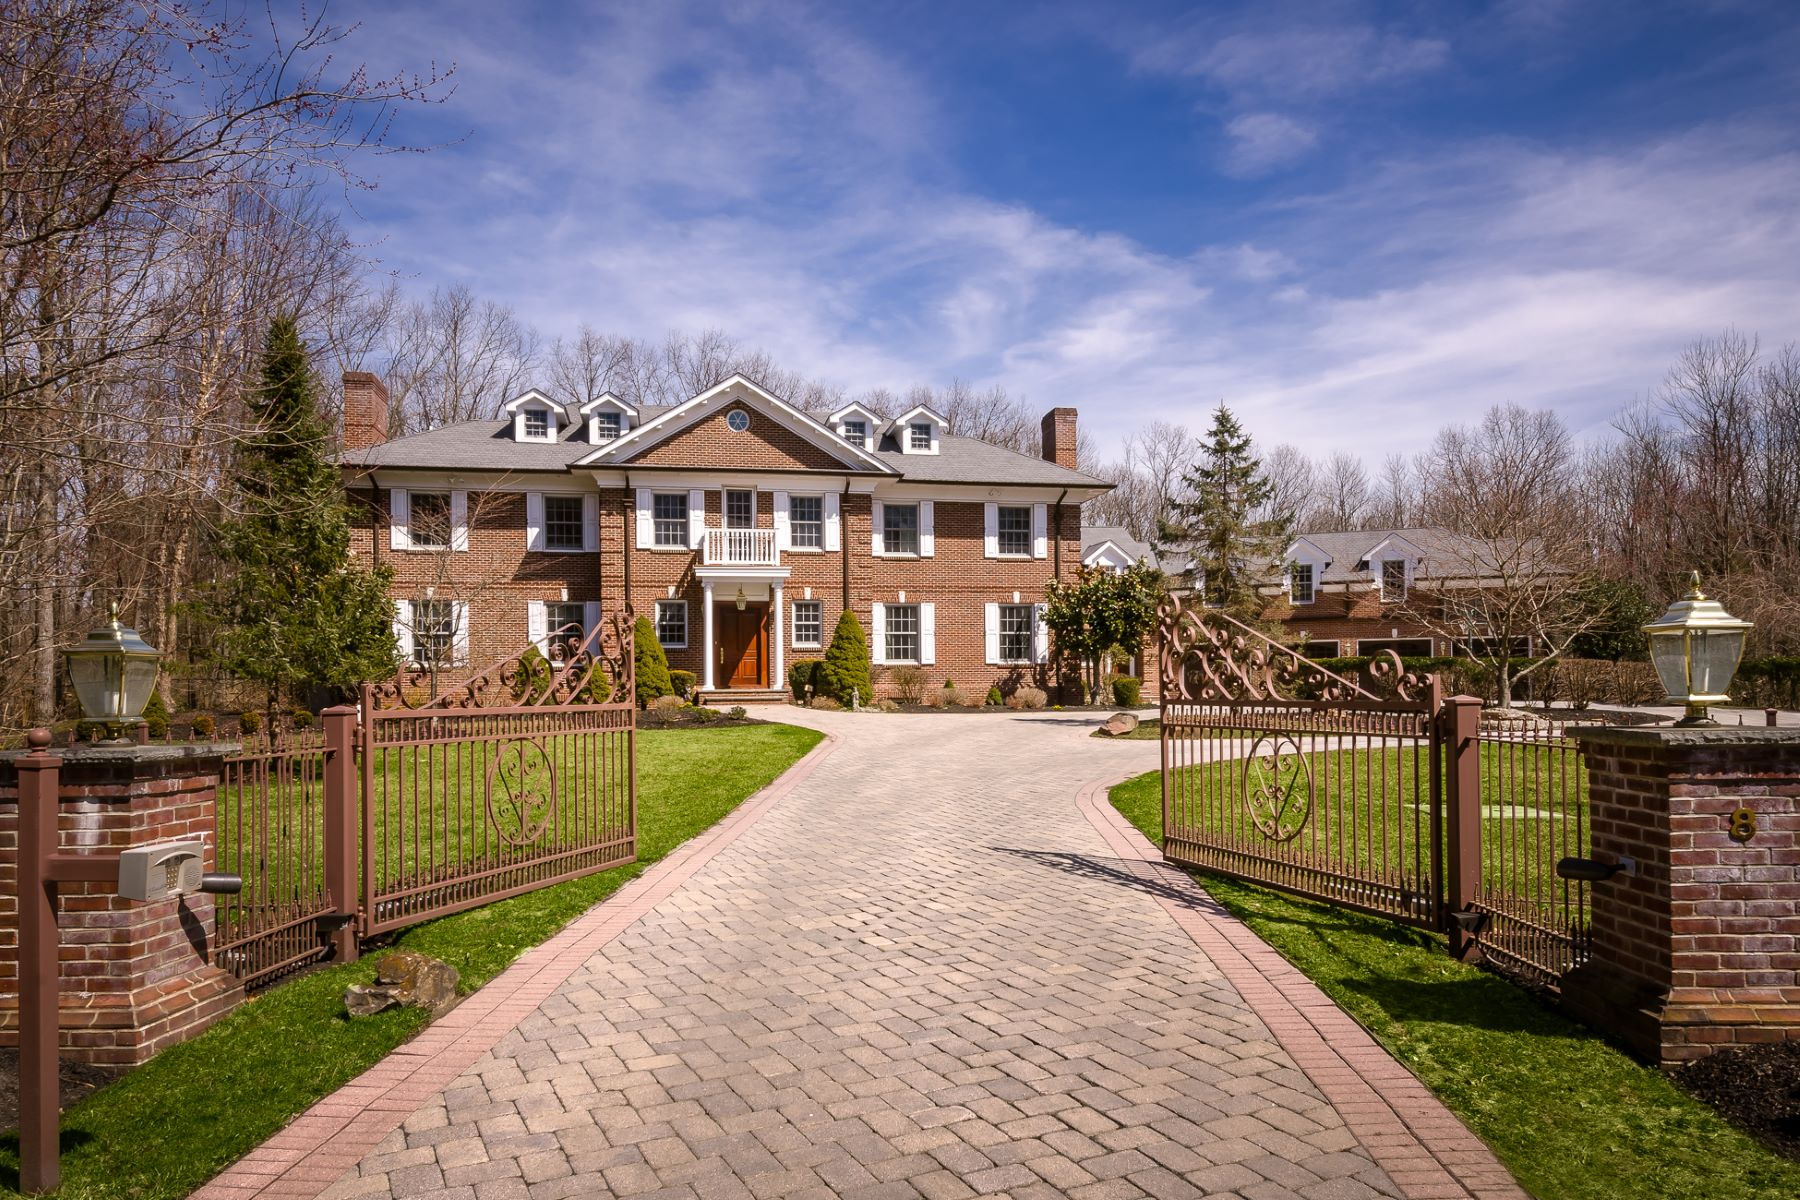 Single Family Homes for Active at Stonybrook Manor: Once-in-a-Lifetime Magnificence 8 Players Lane Princeton, New Jersey 08540 United States